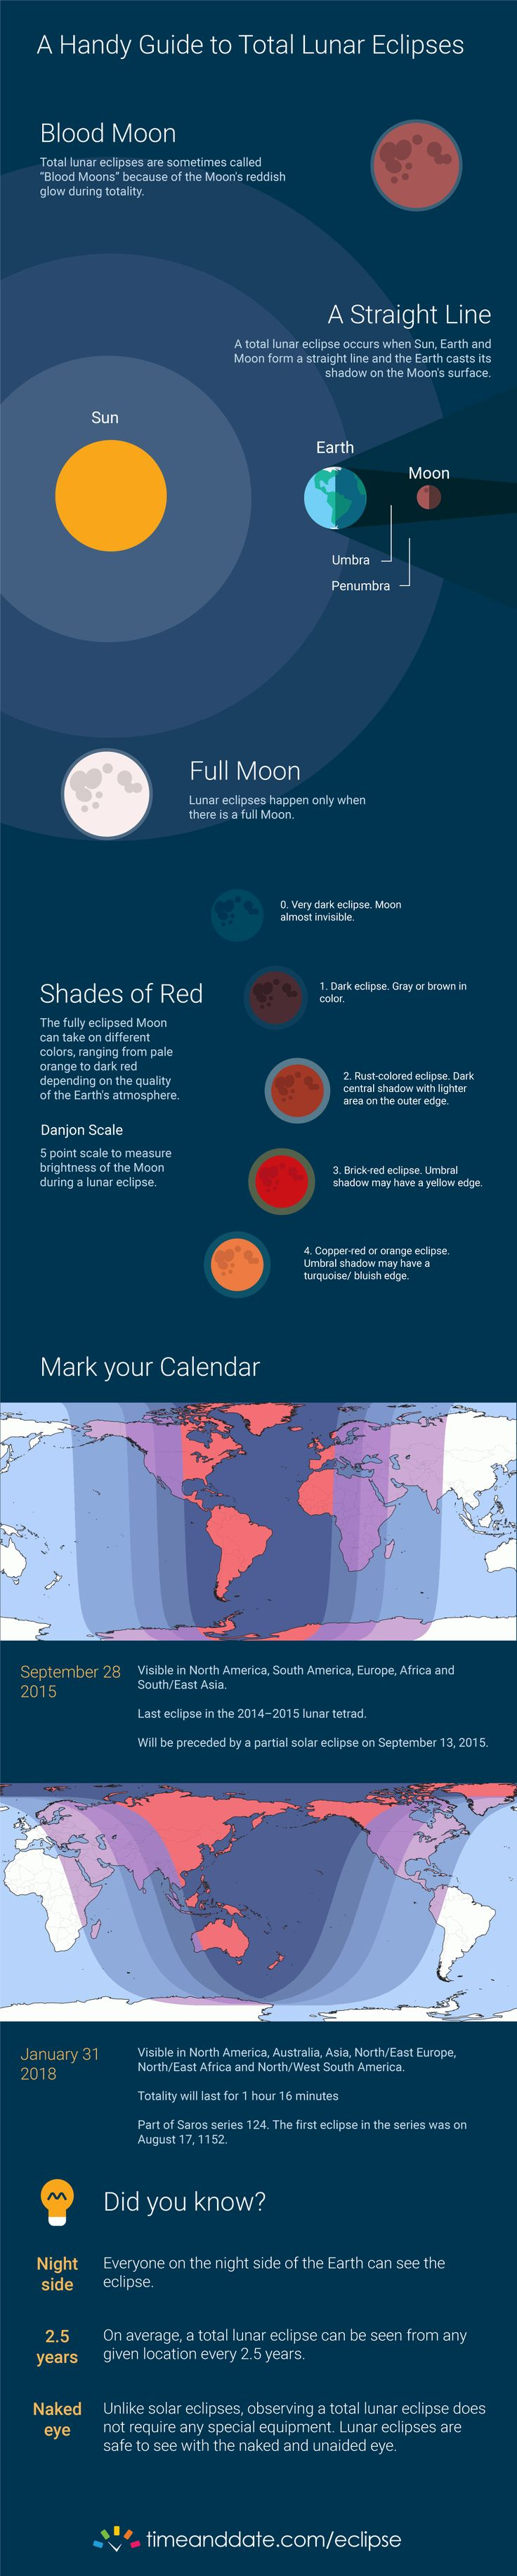 A Handy Guide to Total Lunar Eclipses. Infographic.